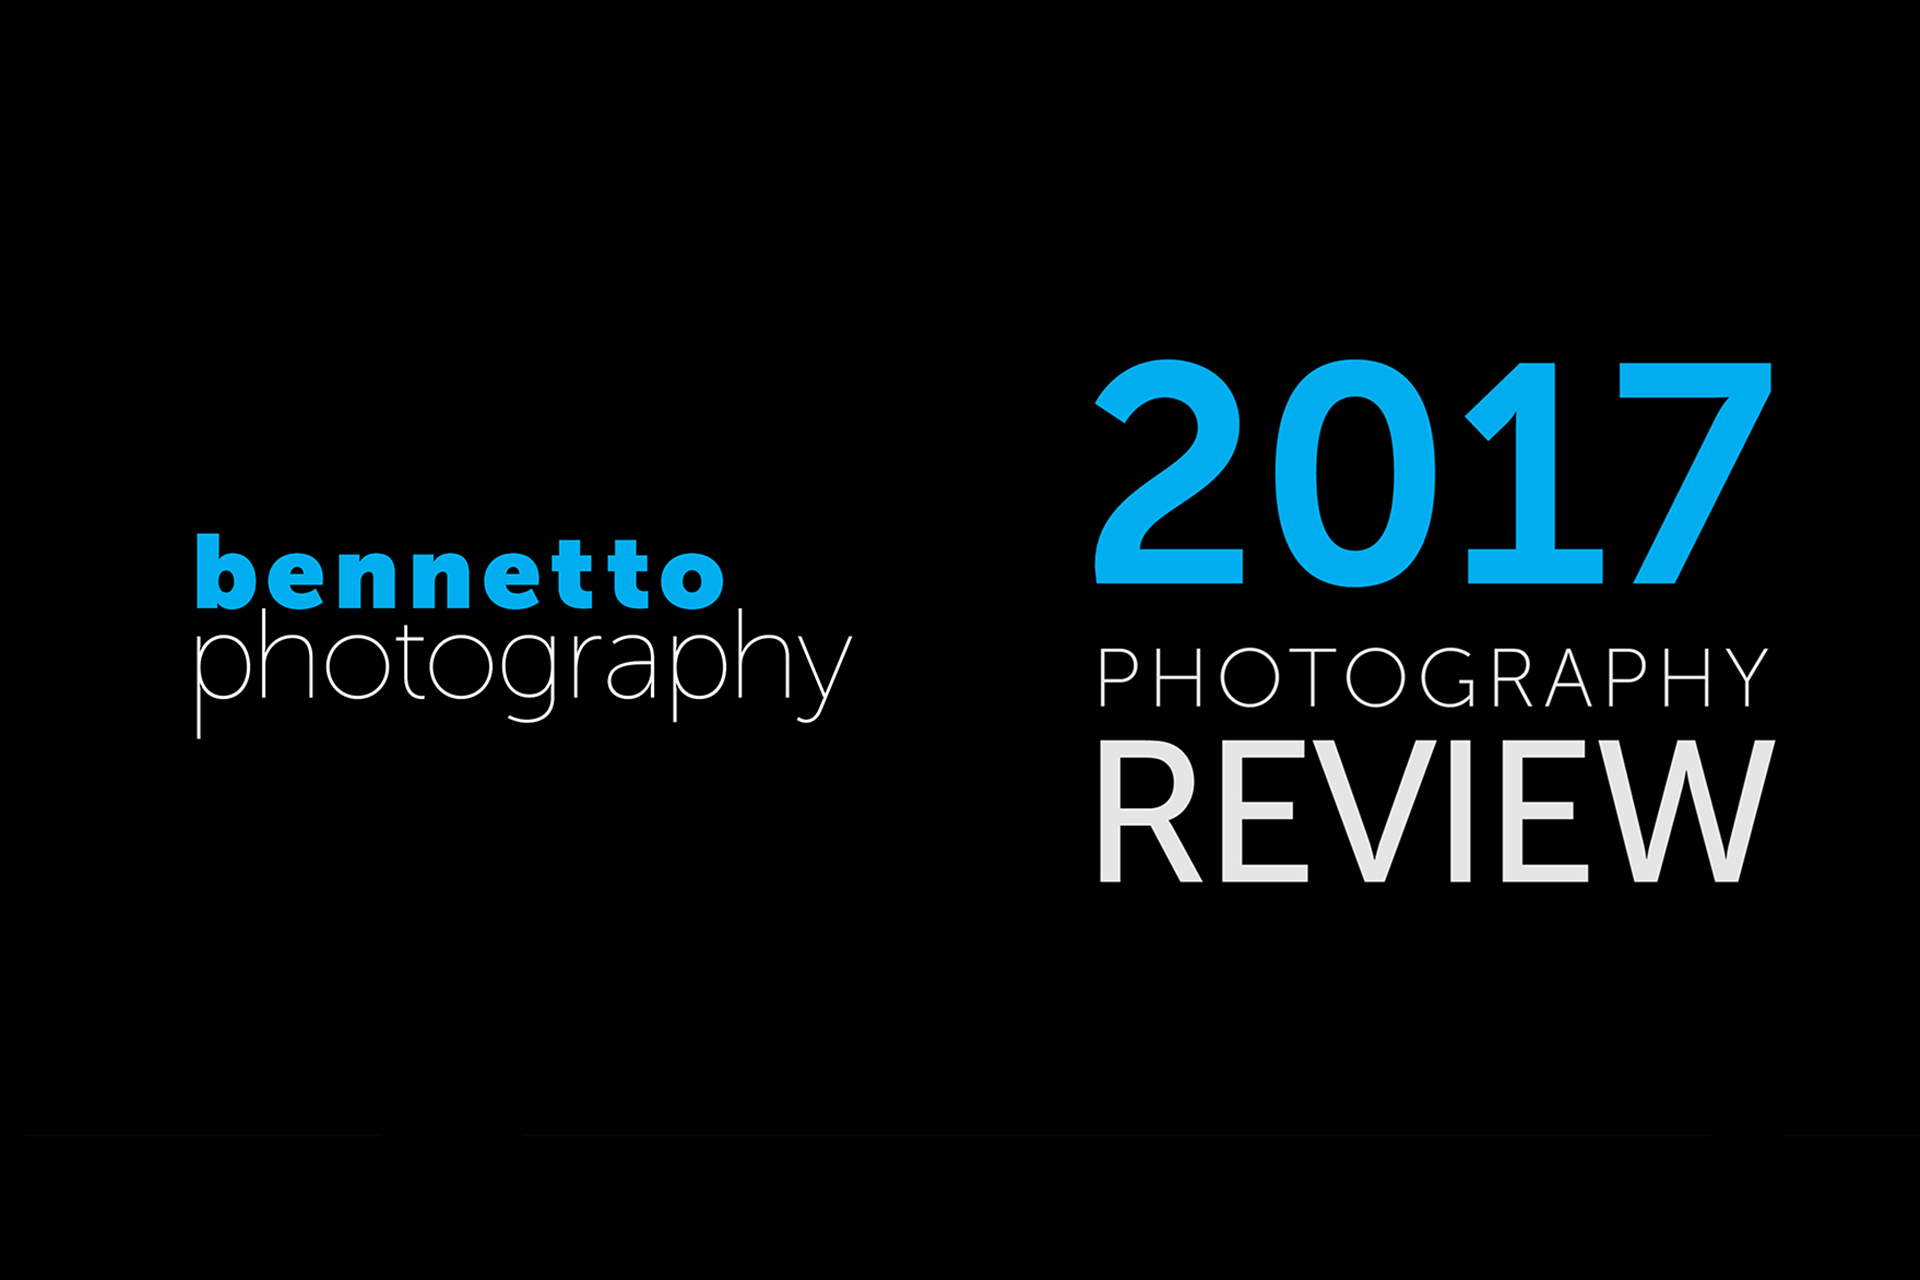 Photography review 2017